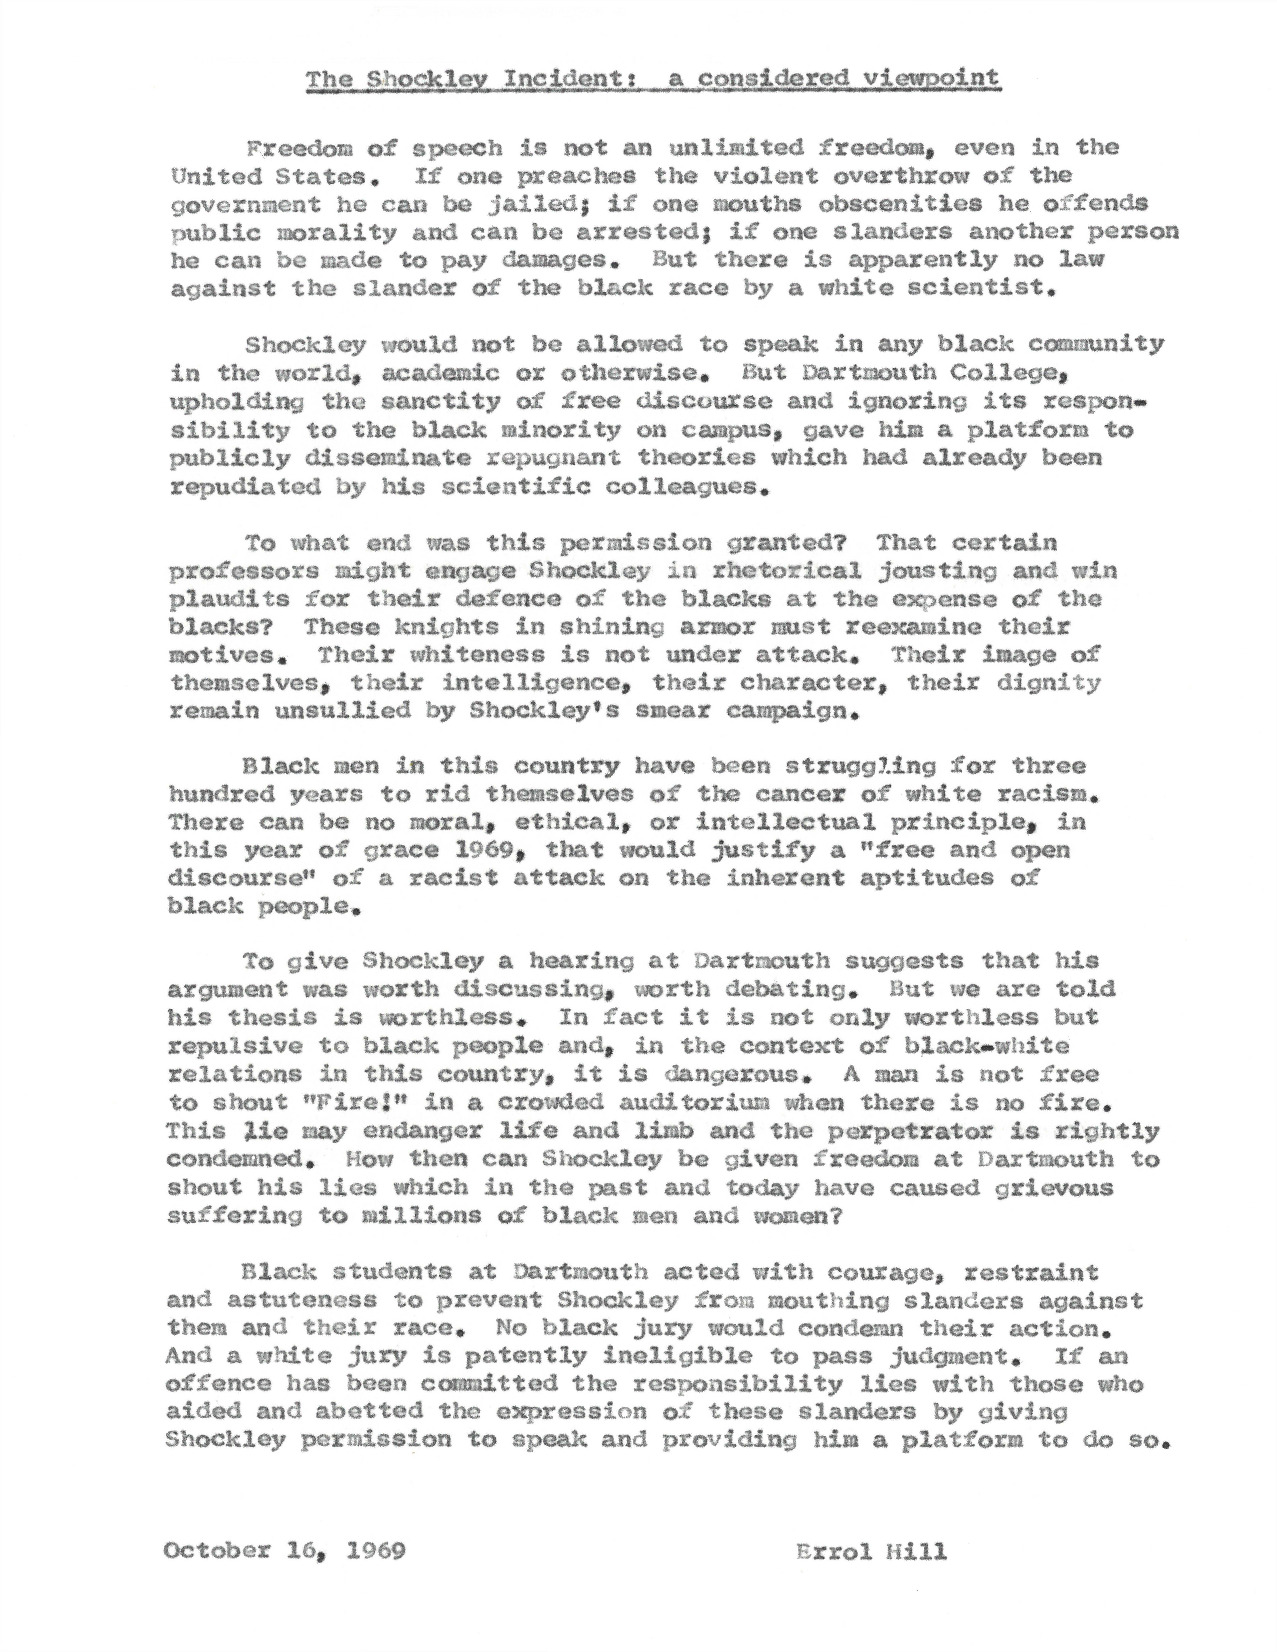 Dartmouth professor, adviser to the Afro-American Society, and Affirmative Action Officer Errol Hill posits that Nobel prize winner William Shockley should not have been permitted to present his controversial paper at Dartmouth College. Hill thought the paper's suggestion that there are correlations between intelligence and race was not only scientifically inaccurate but harmful to relations between members of the Black and white communities. He expresses his support for Dartmouth students who used peaceful protest to drown-out Shockley's presentation.